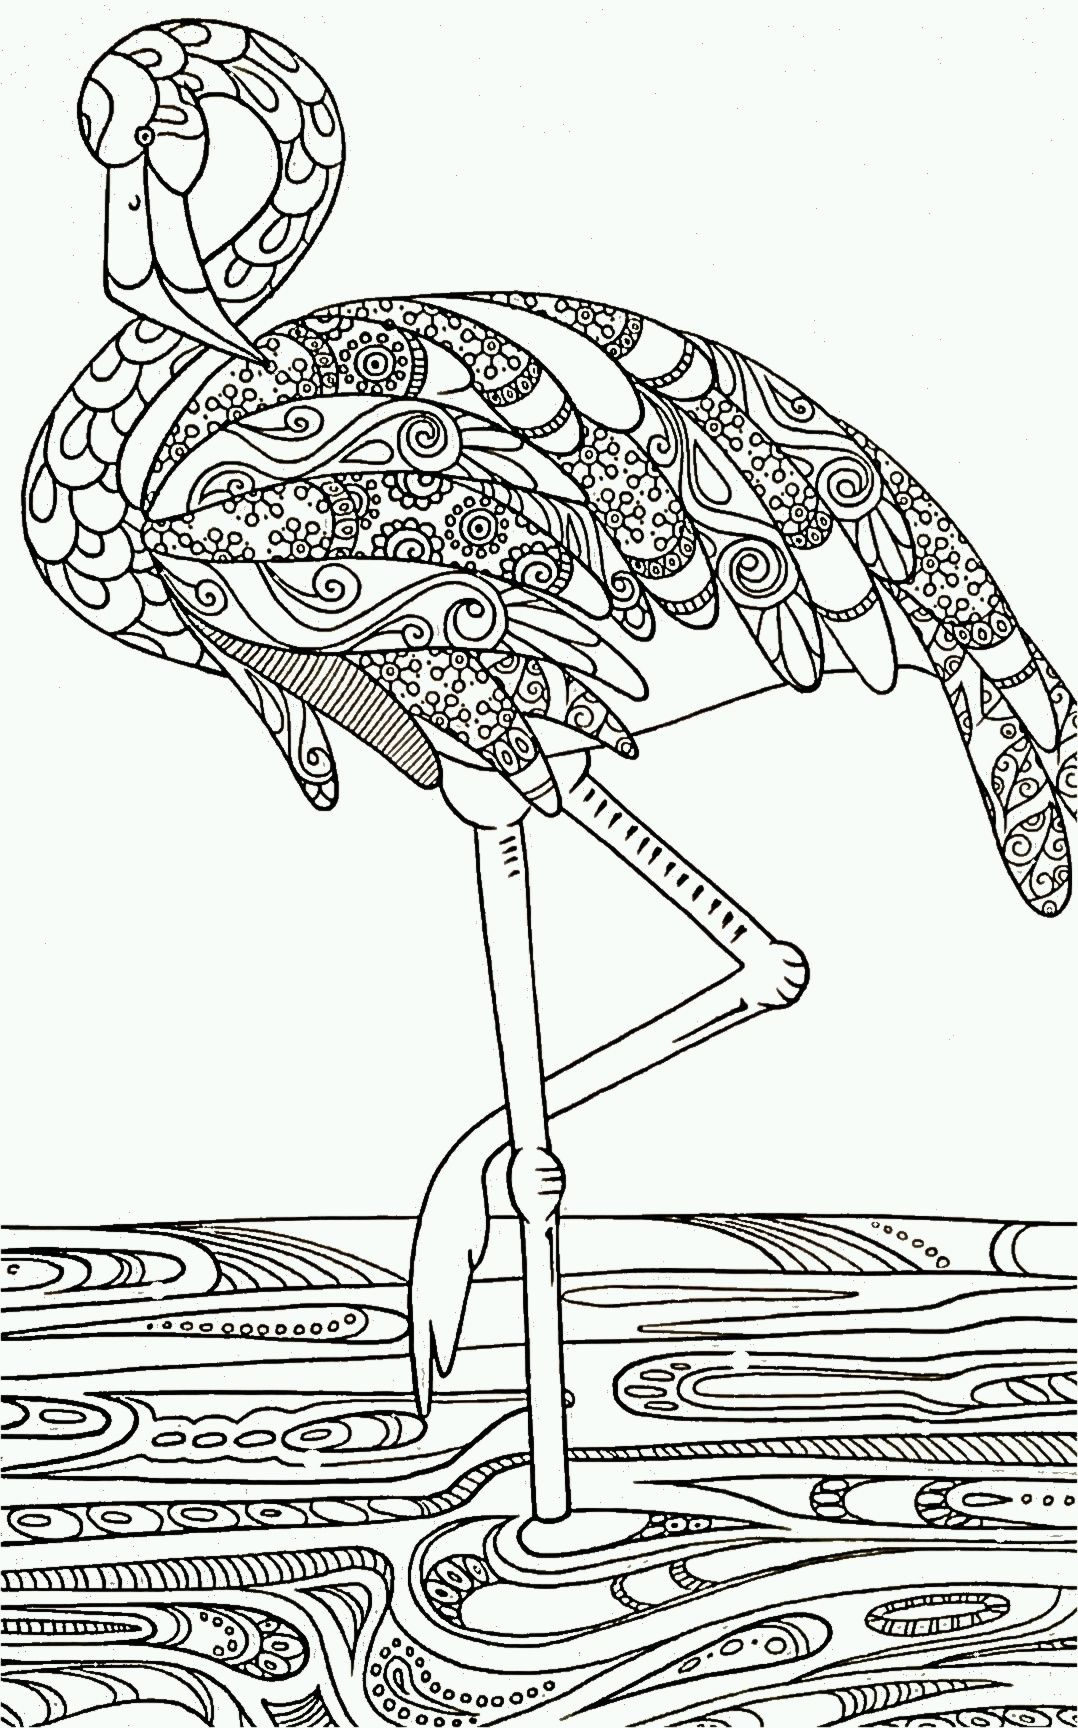 Coloring sheets for adults flamingo - Free Flamingo Adult Colouring Sheet